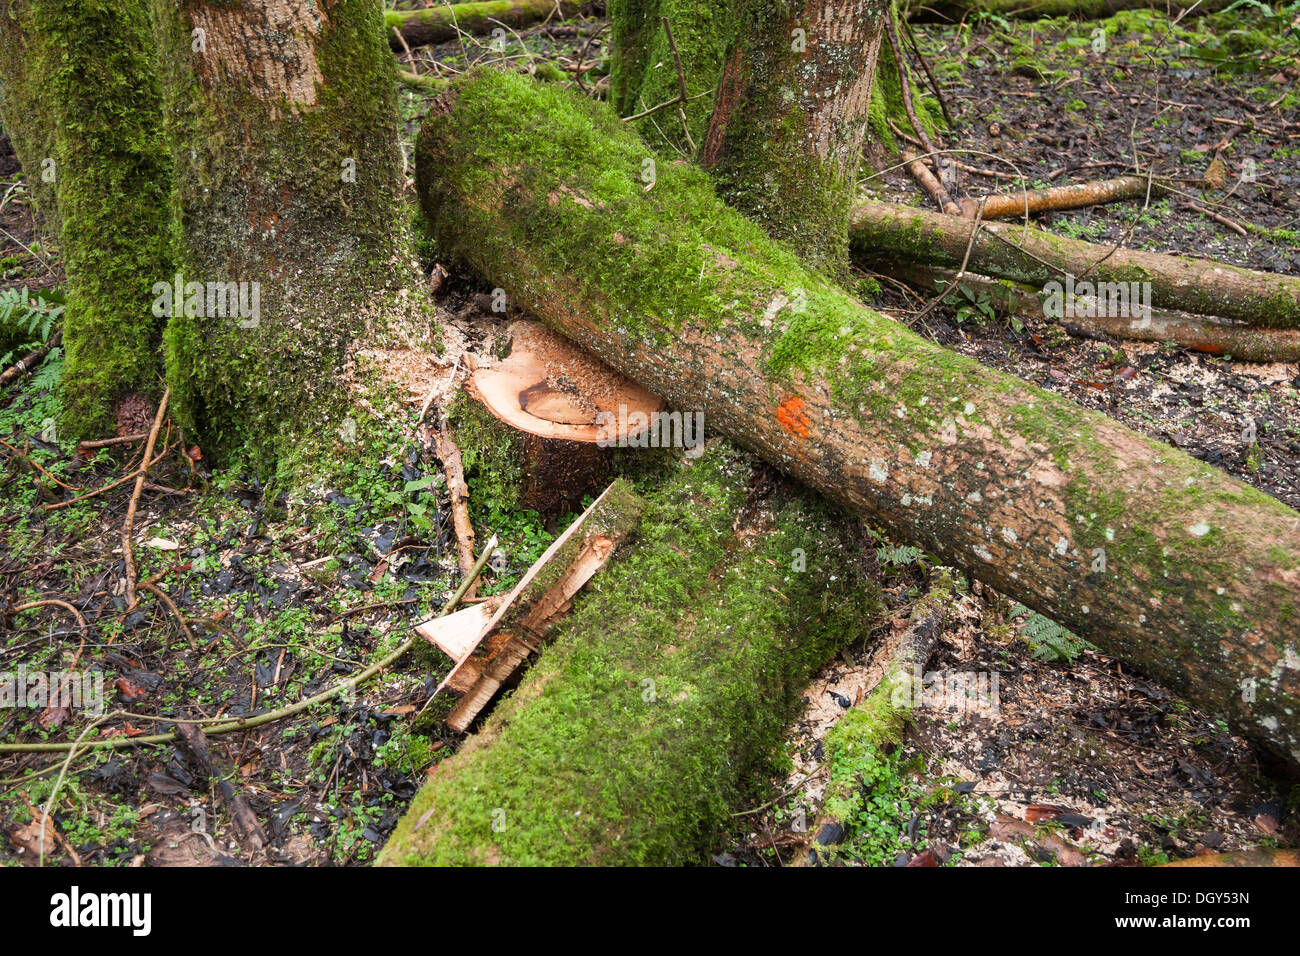 ash tree diseased branches felled in woods - Stock Image